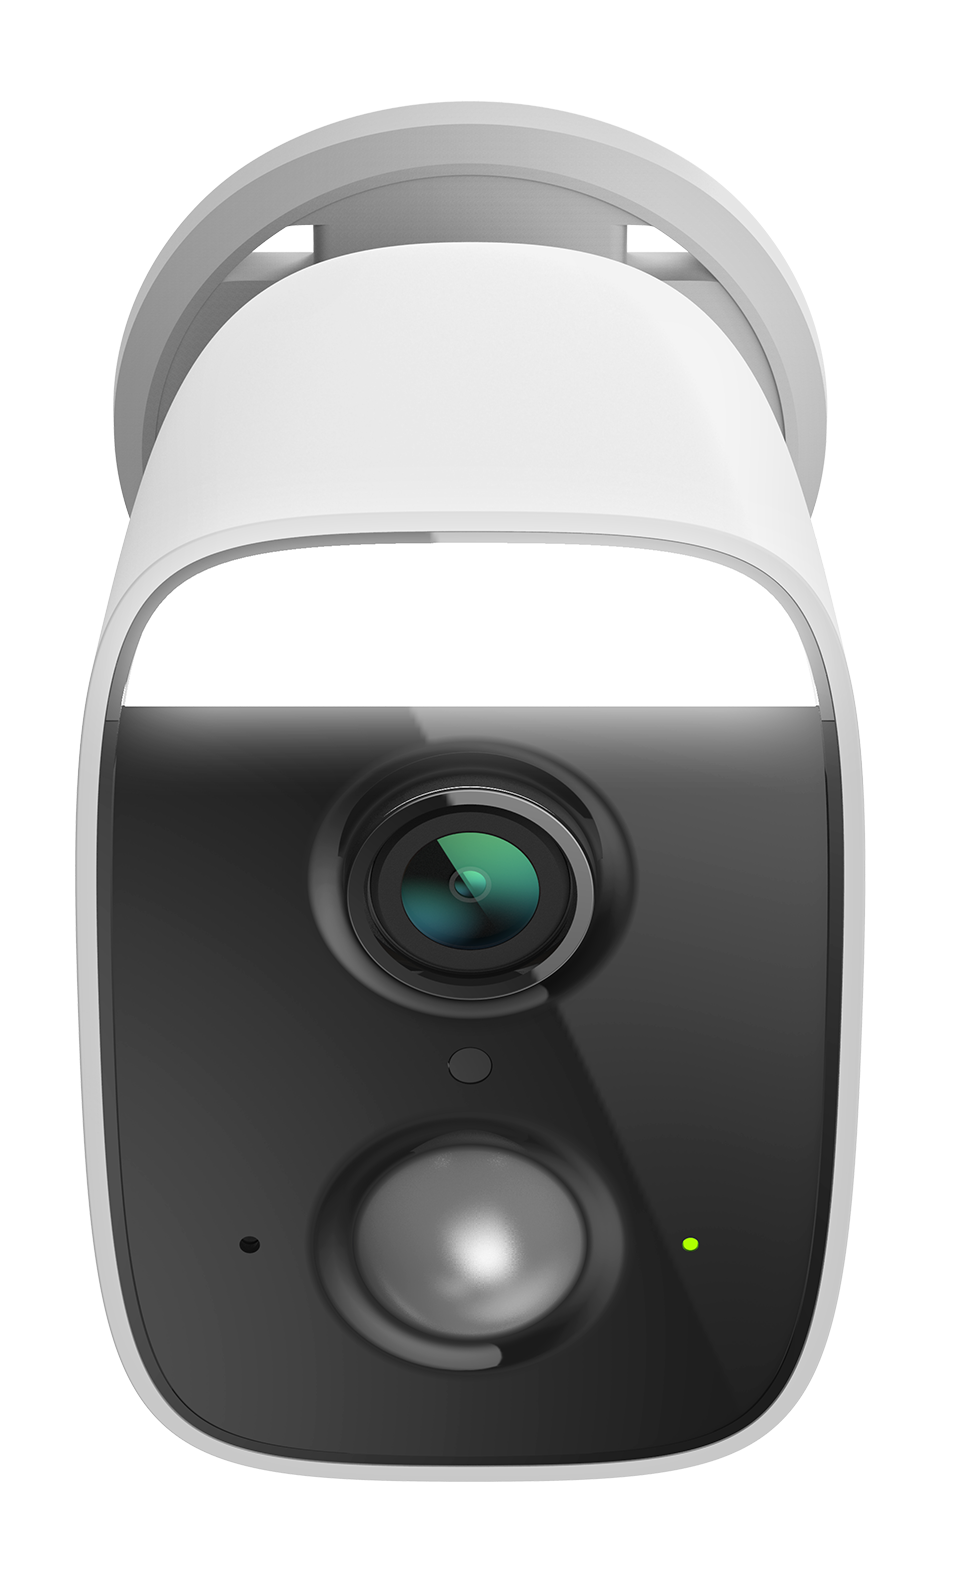 DCS-8627LH Full HD Pan/Tilt Pro Wi-Fi Camera